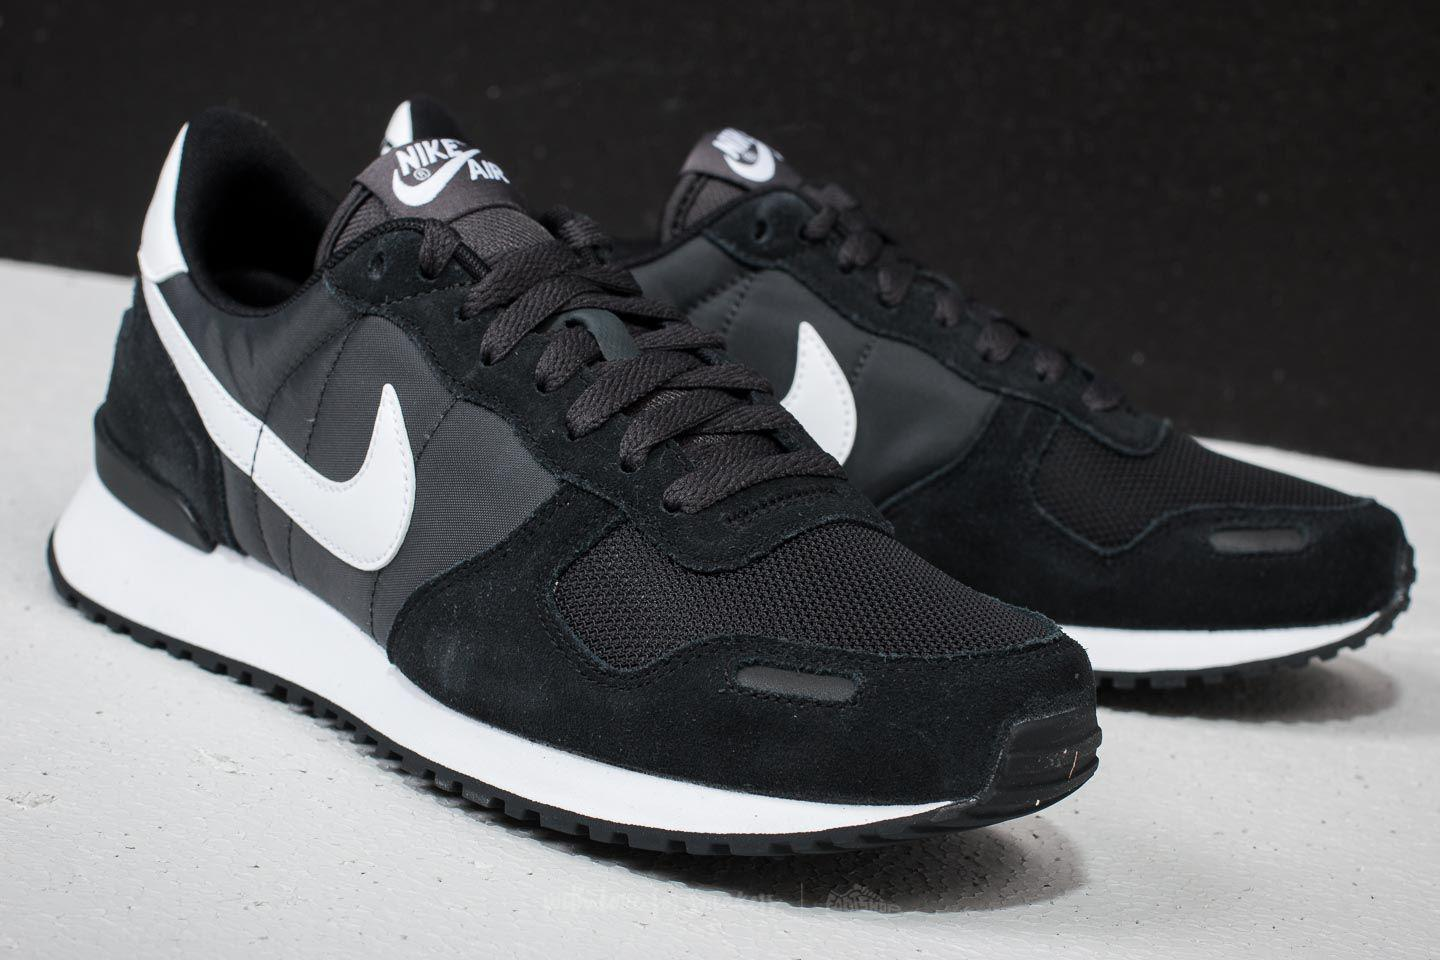 new product f56f1 79438 Lyst - Nike Air Vortex Black White Anthracite in Black for M